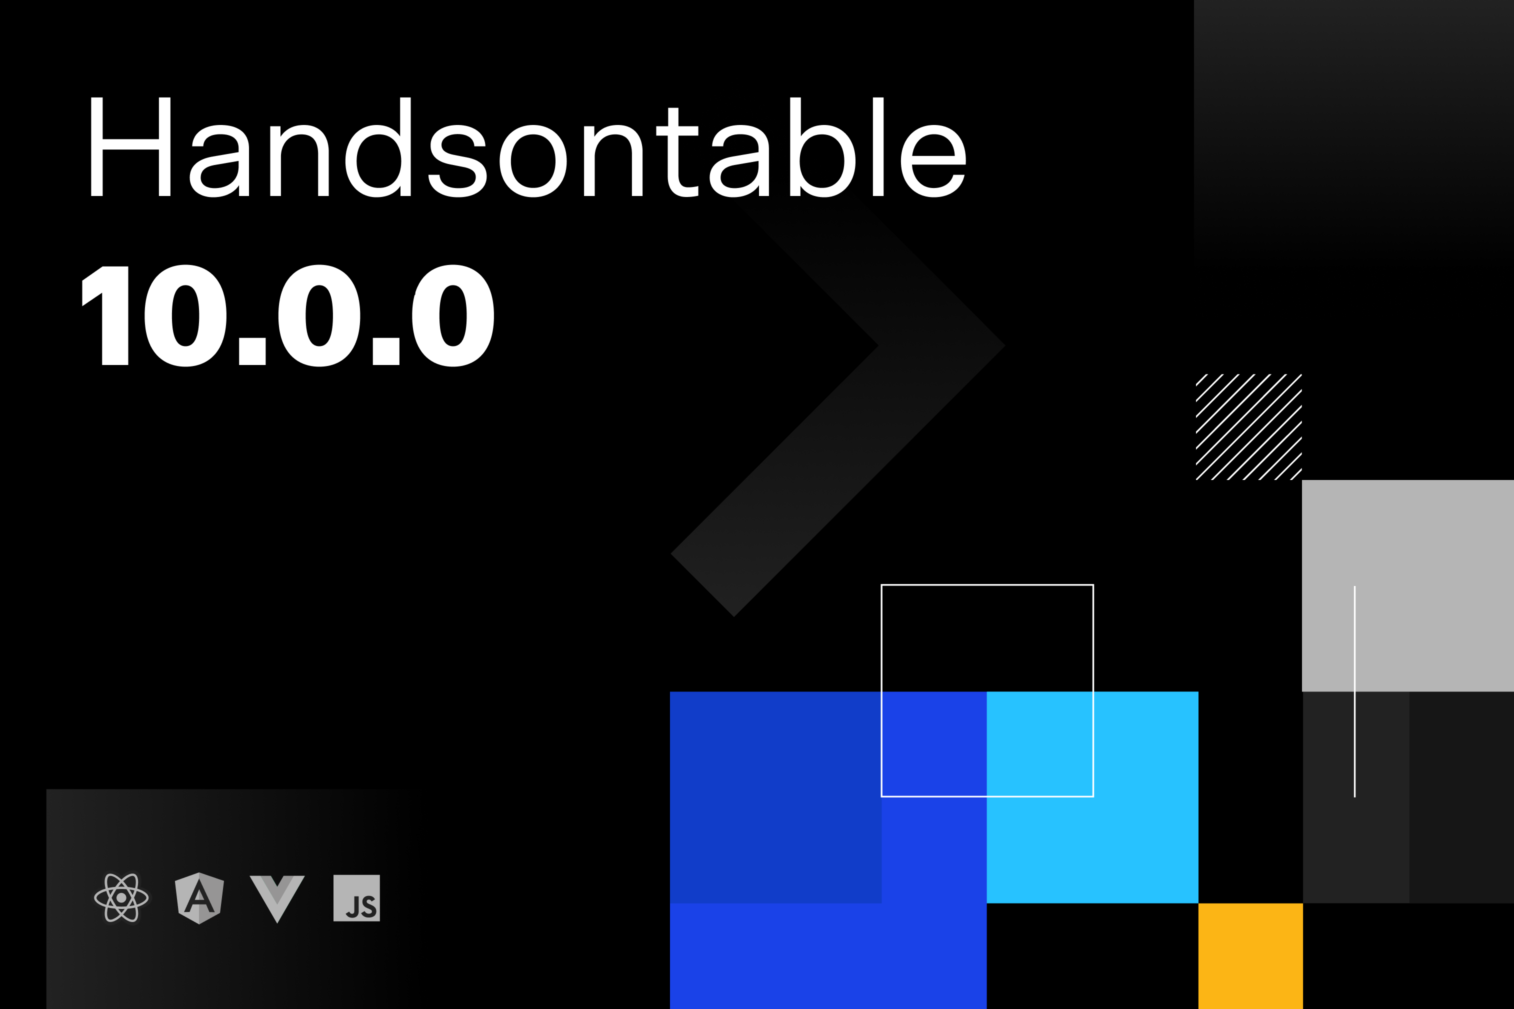 Handsontable 10.0.0: improved performance and consistency